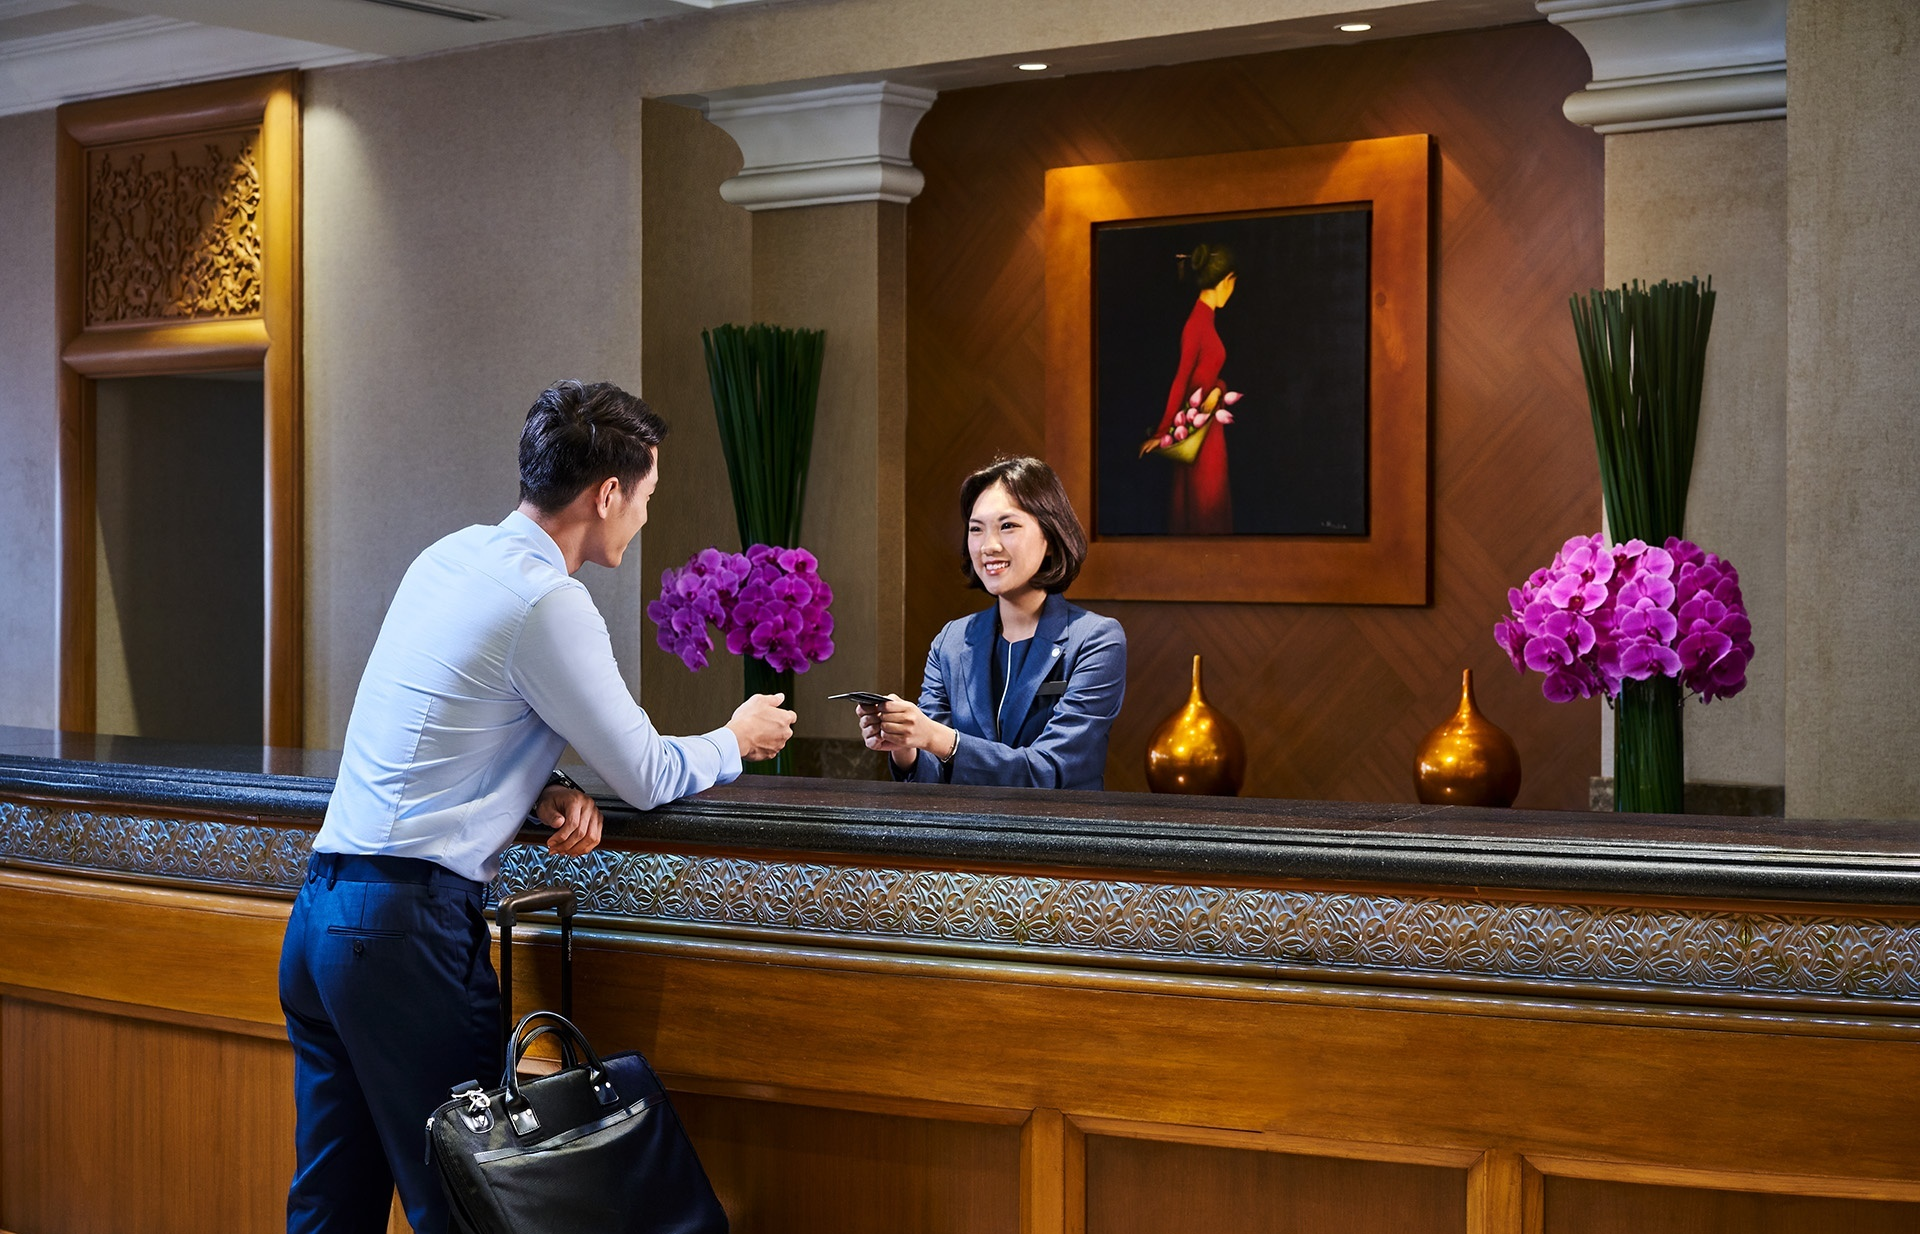 Marriott International Hotels to develop high-quality human resources for hospitality